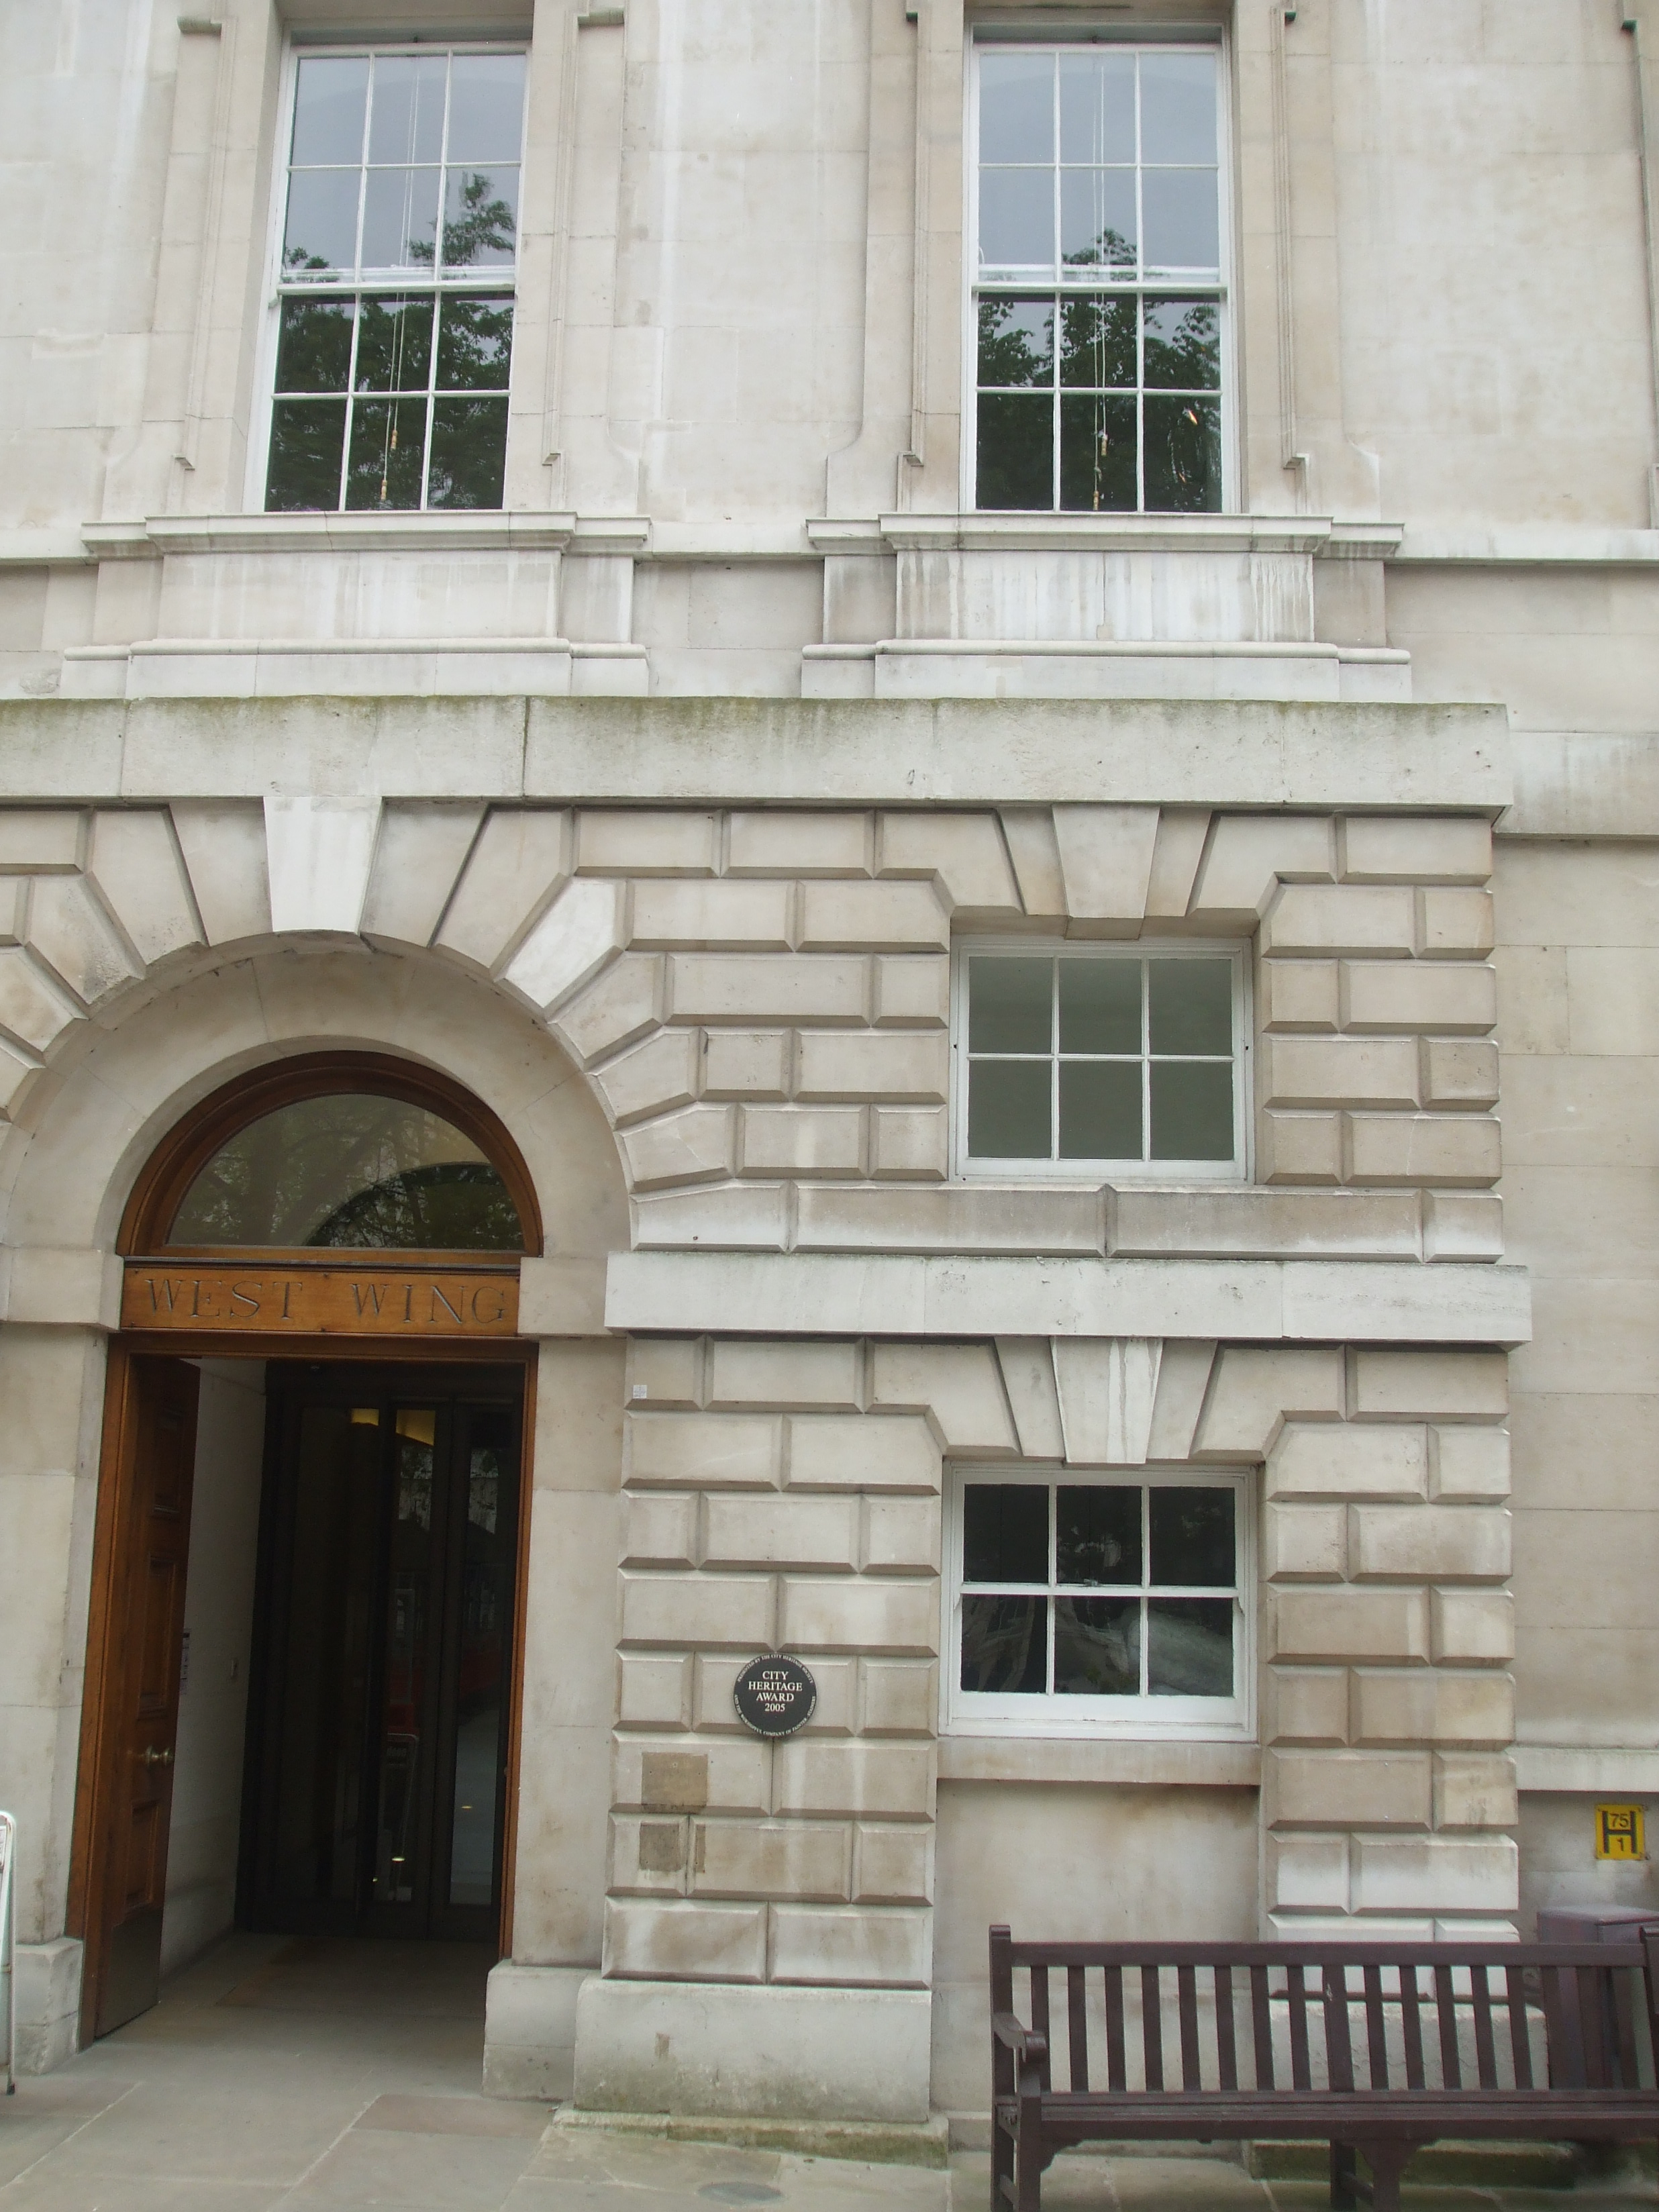 ST BART'S WEST WING ENTRANCE